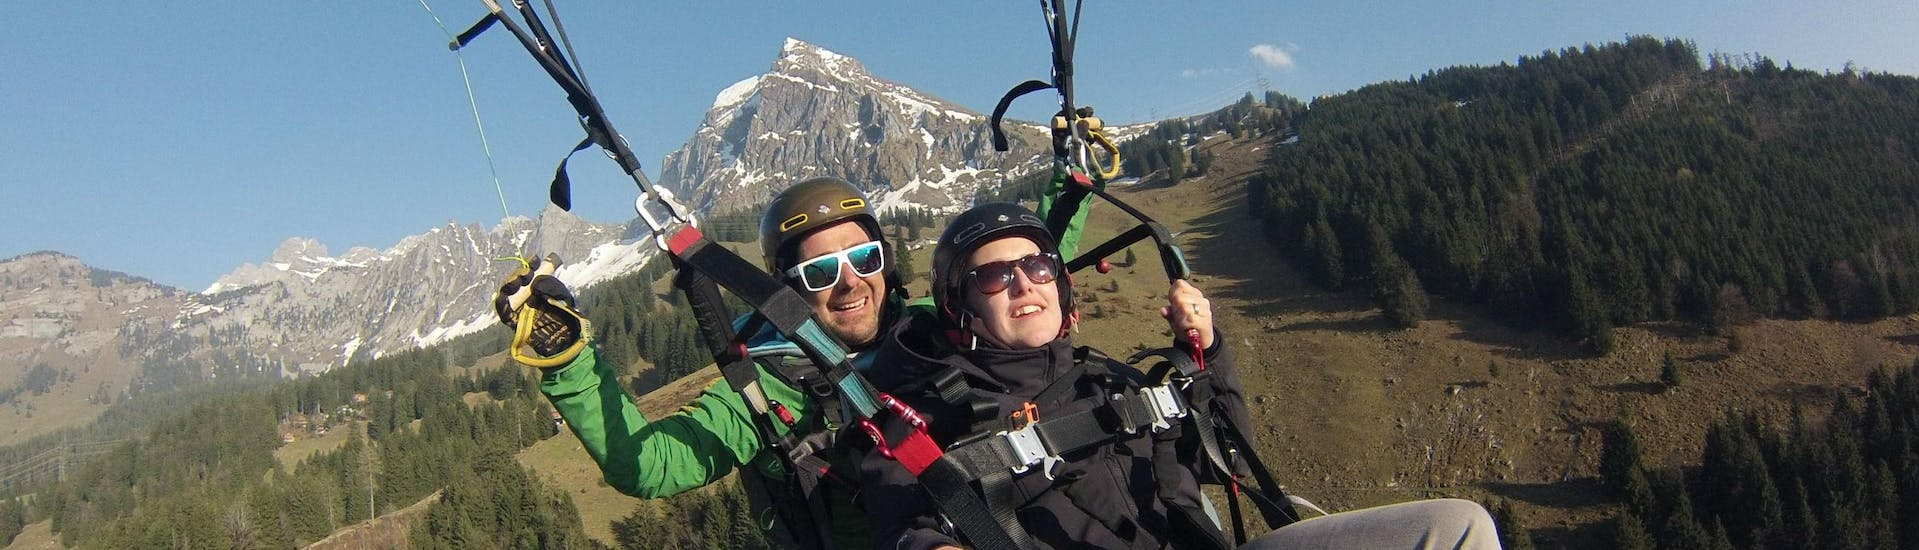 Tandem Paragliding in the Glarnerland & Walensee - Thermal